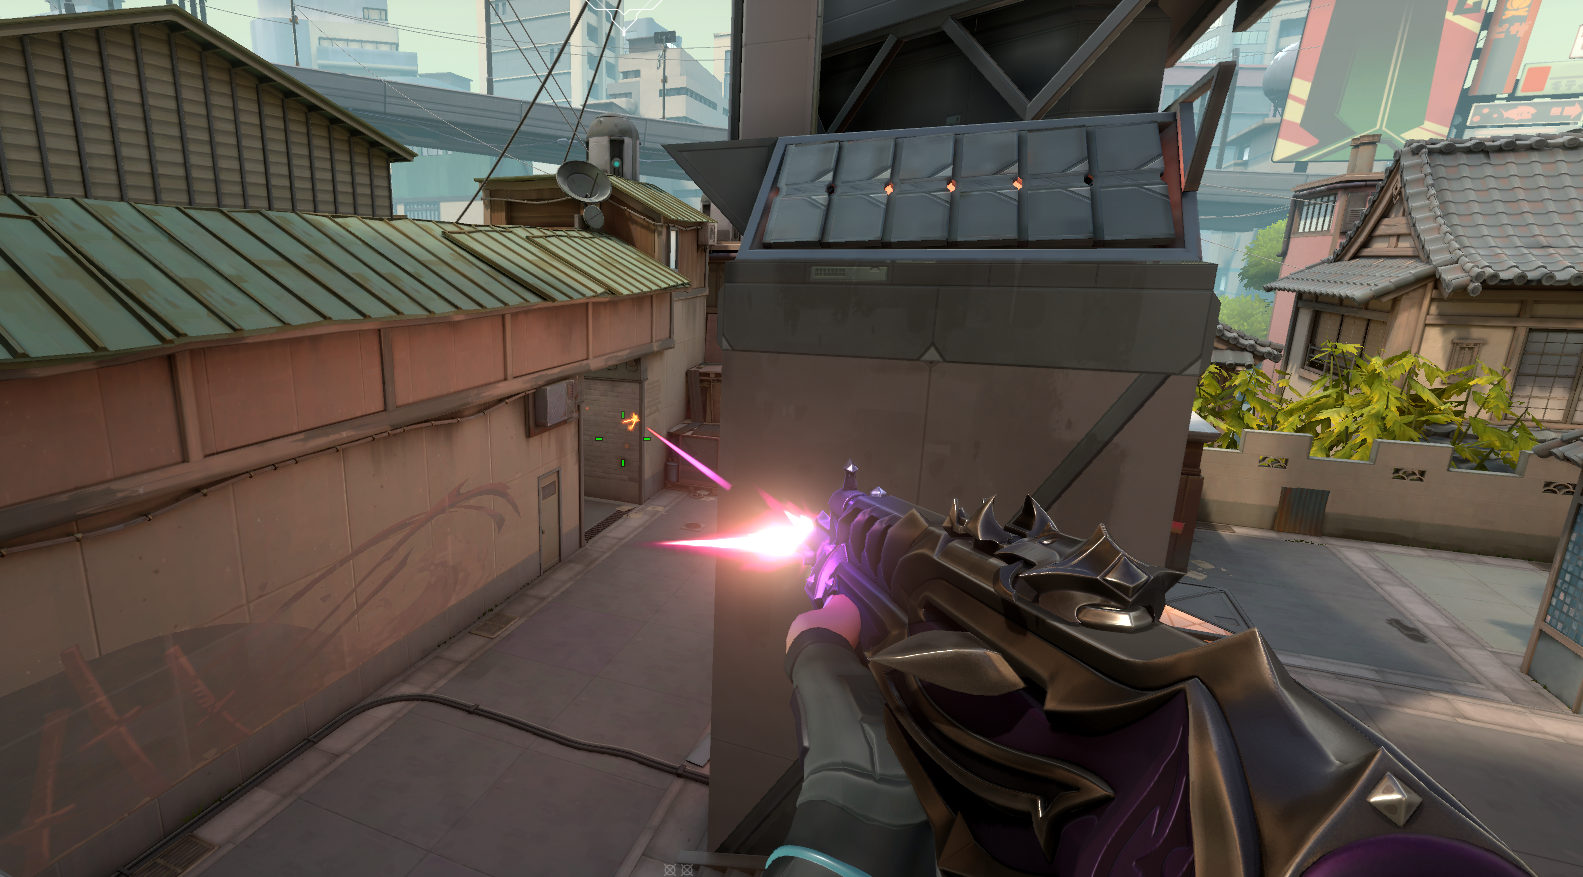 A Valorant player shooting a Vandal with a purple skin on it